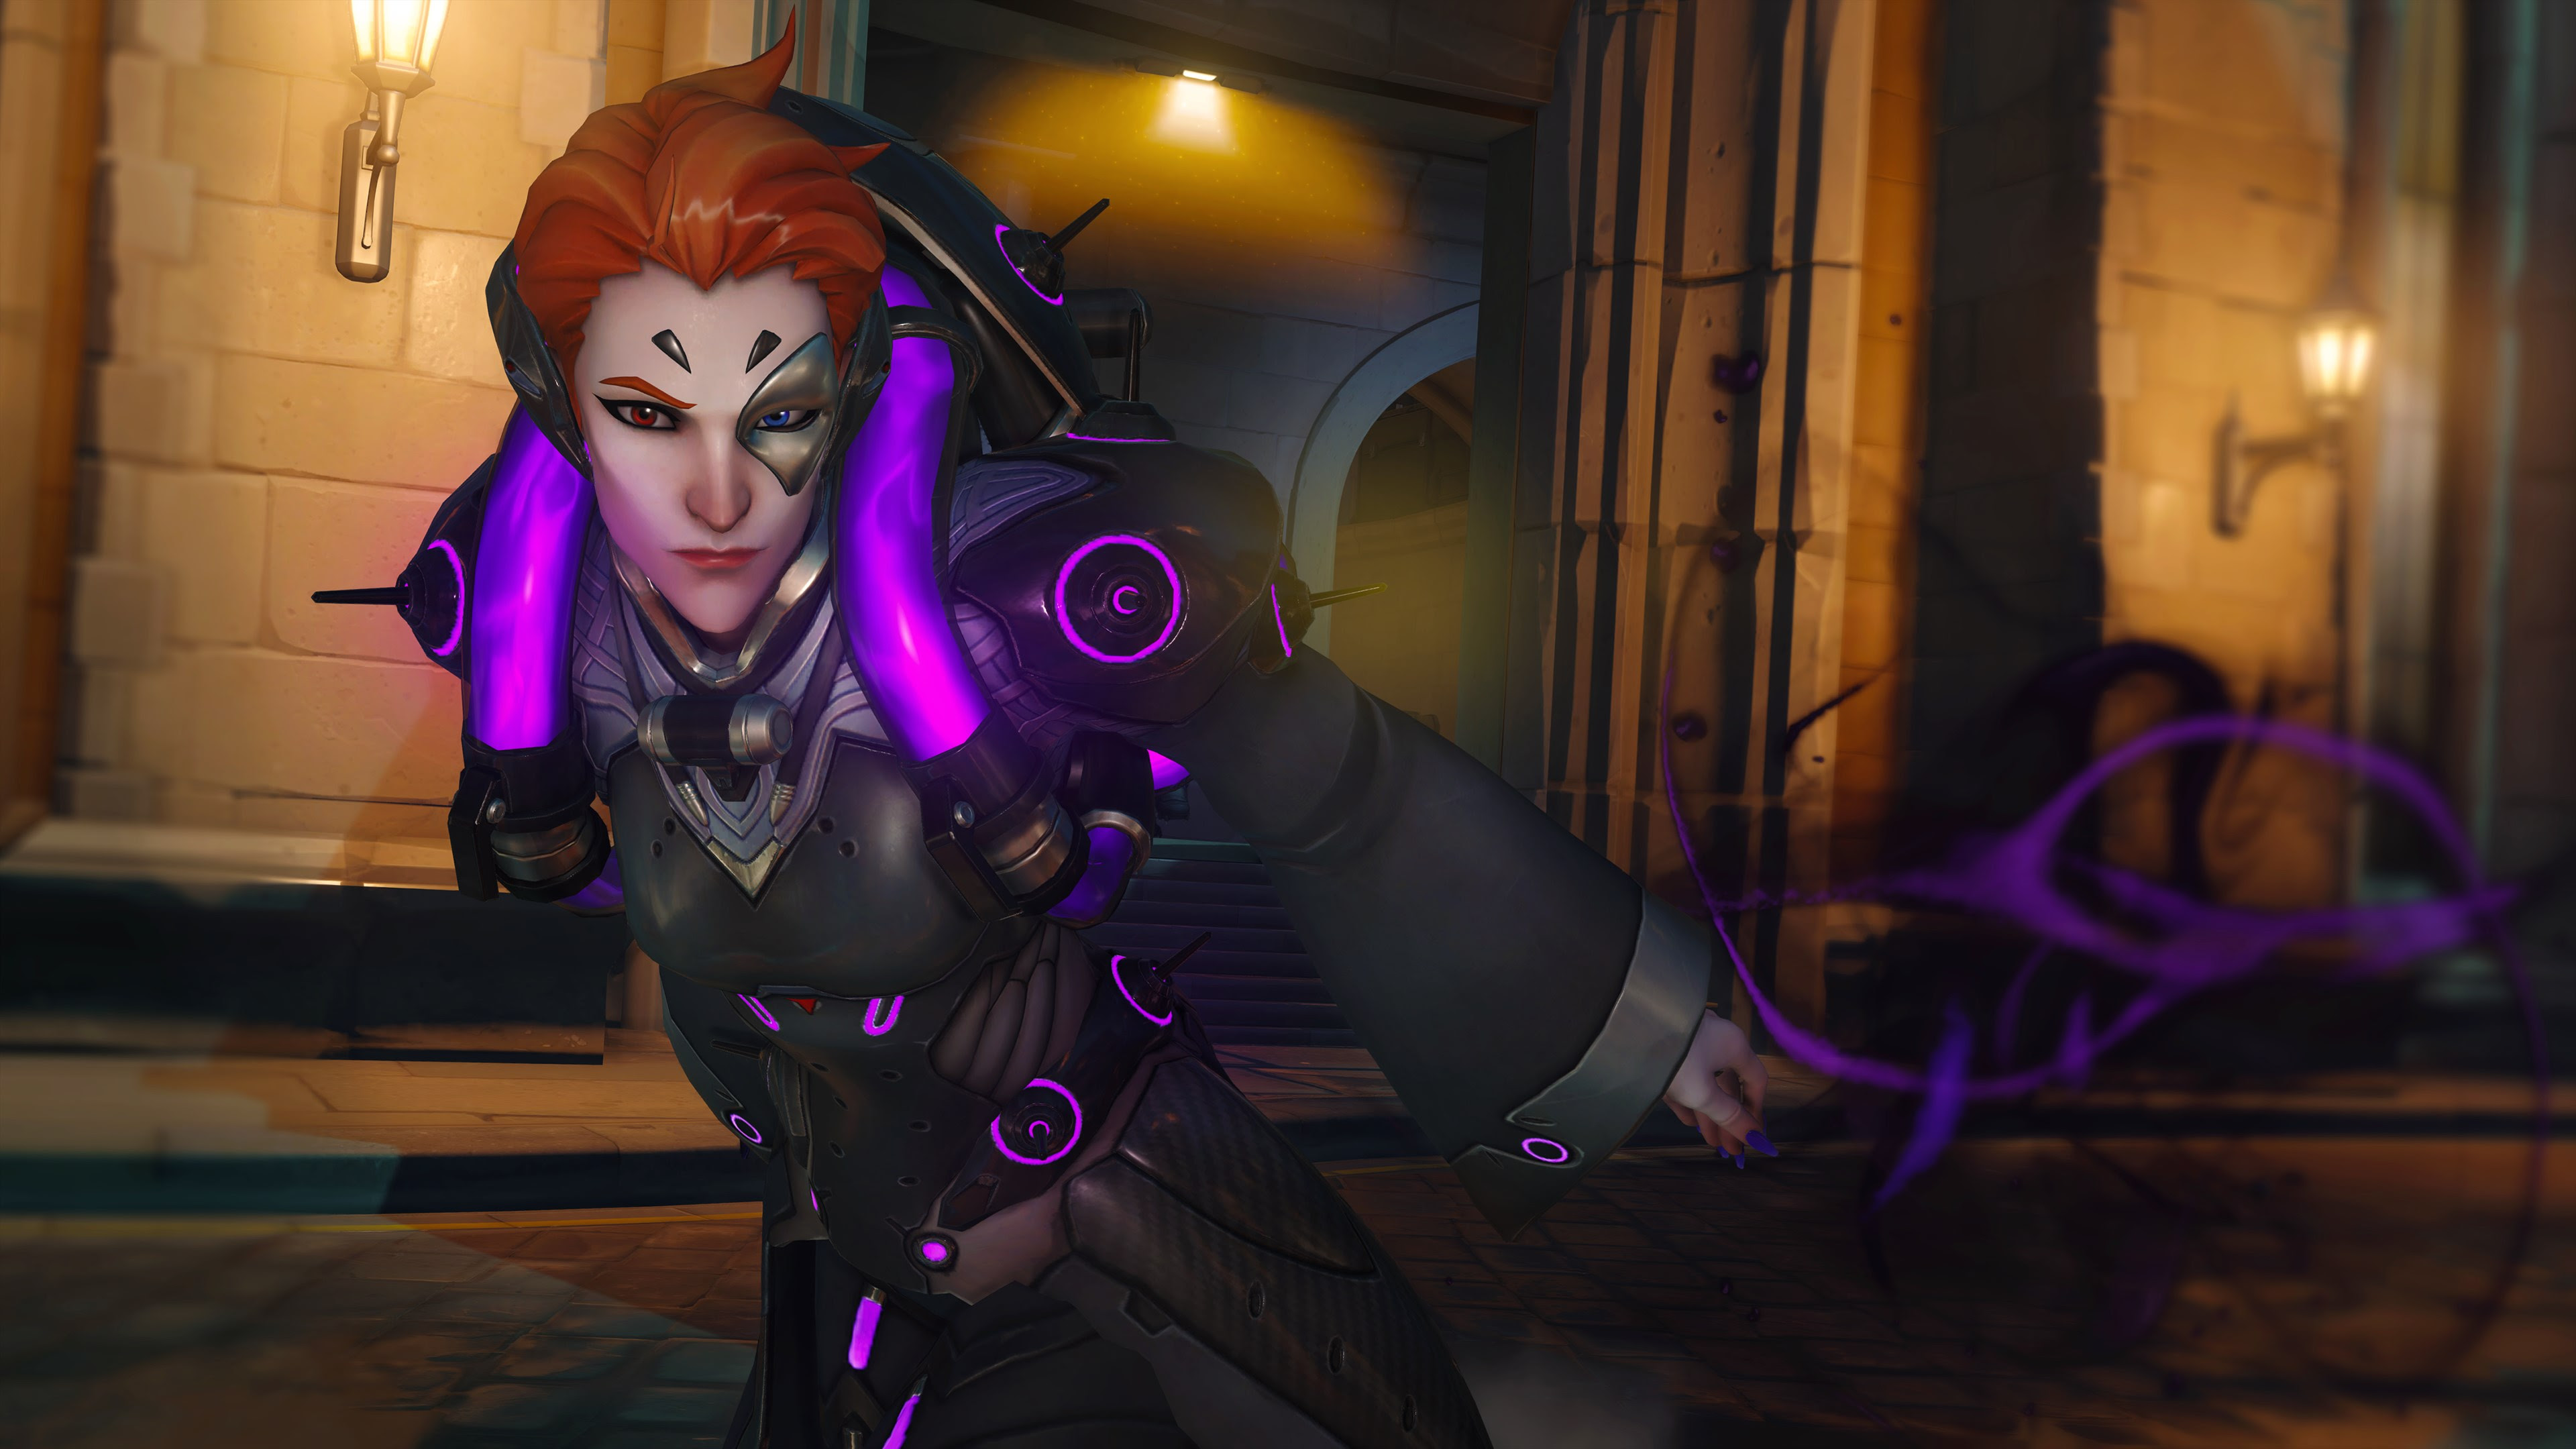 Moira is now available to play in competitive mode in Overwatch screenshot